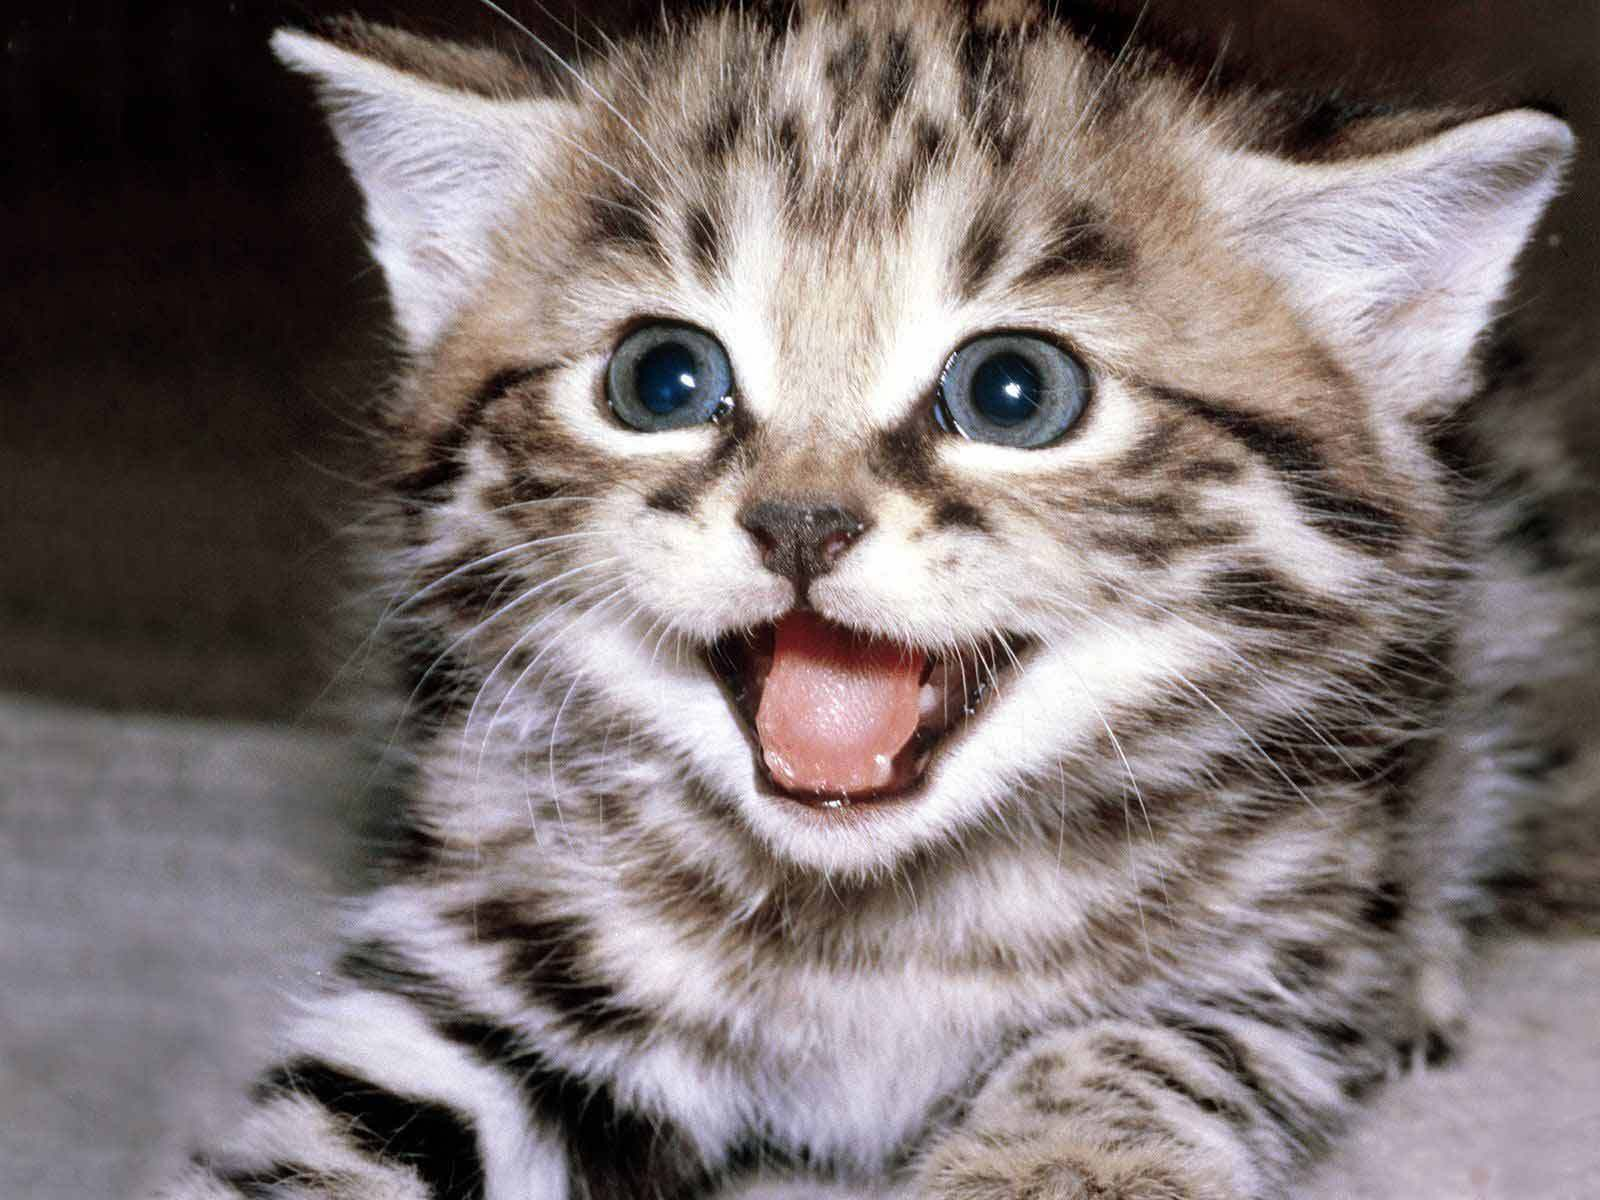 Kittens happy kitten